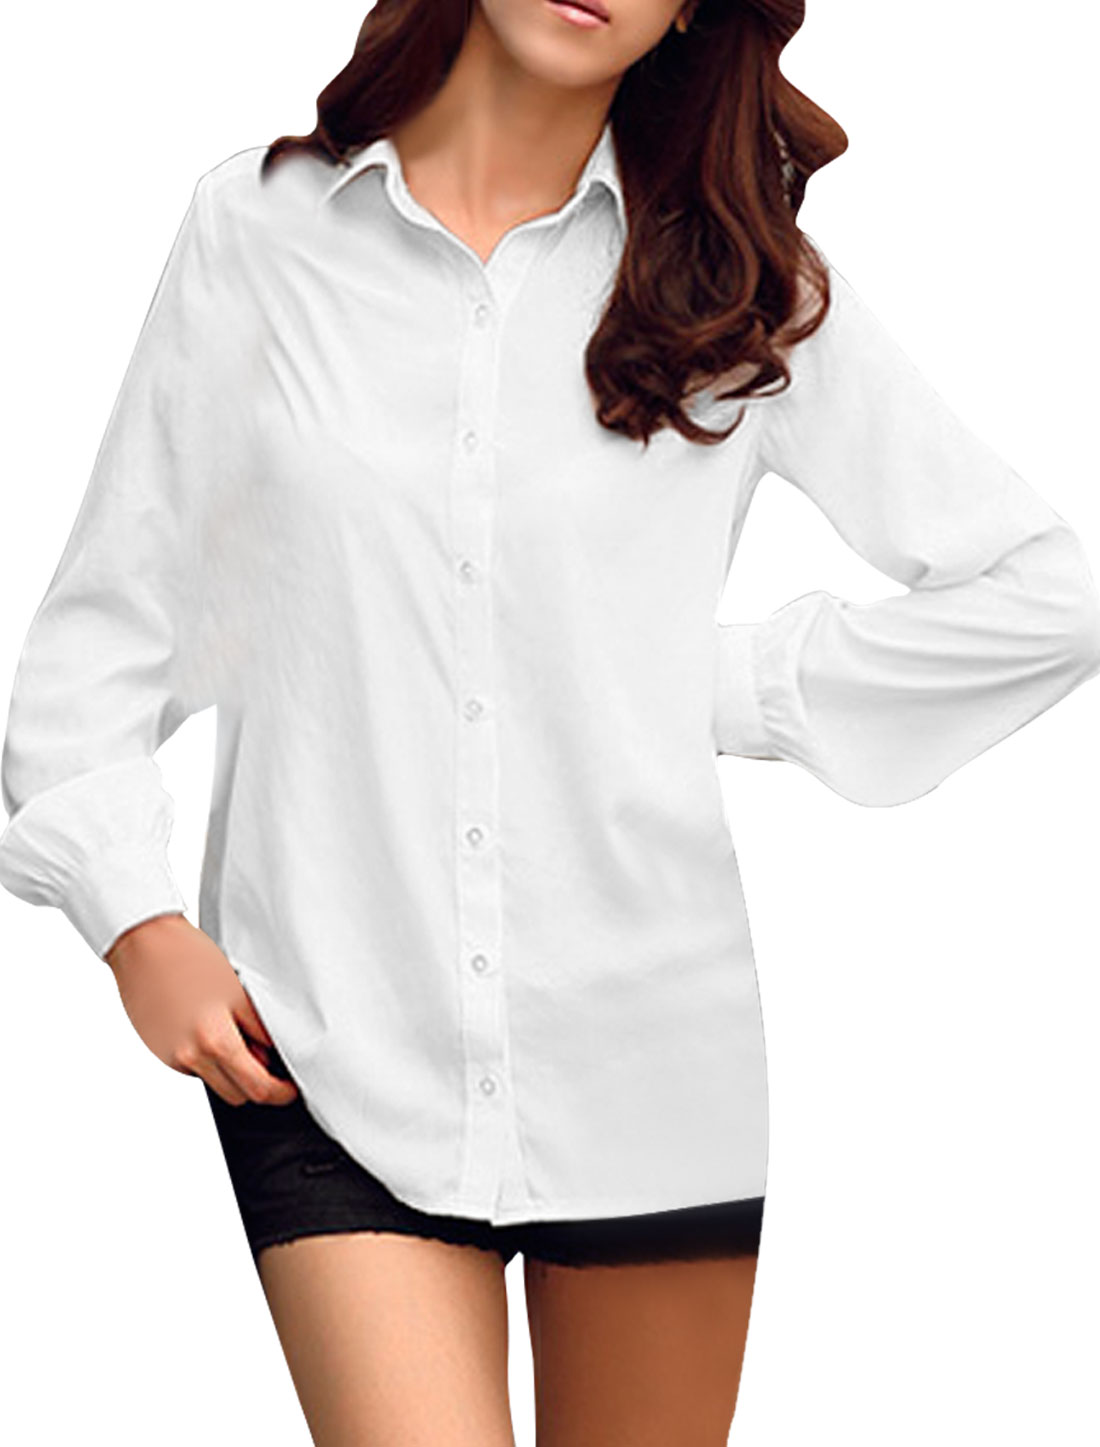 Ladies White Single Breasted Round Hem Spring Trendy Blouse XS